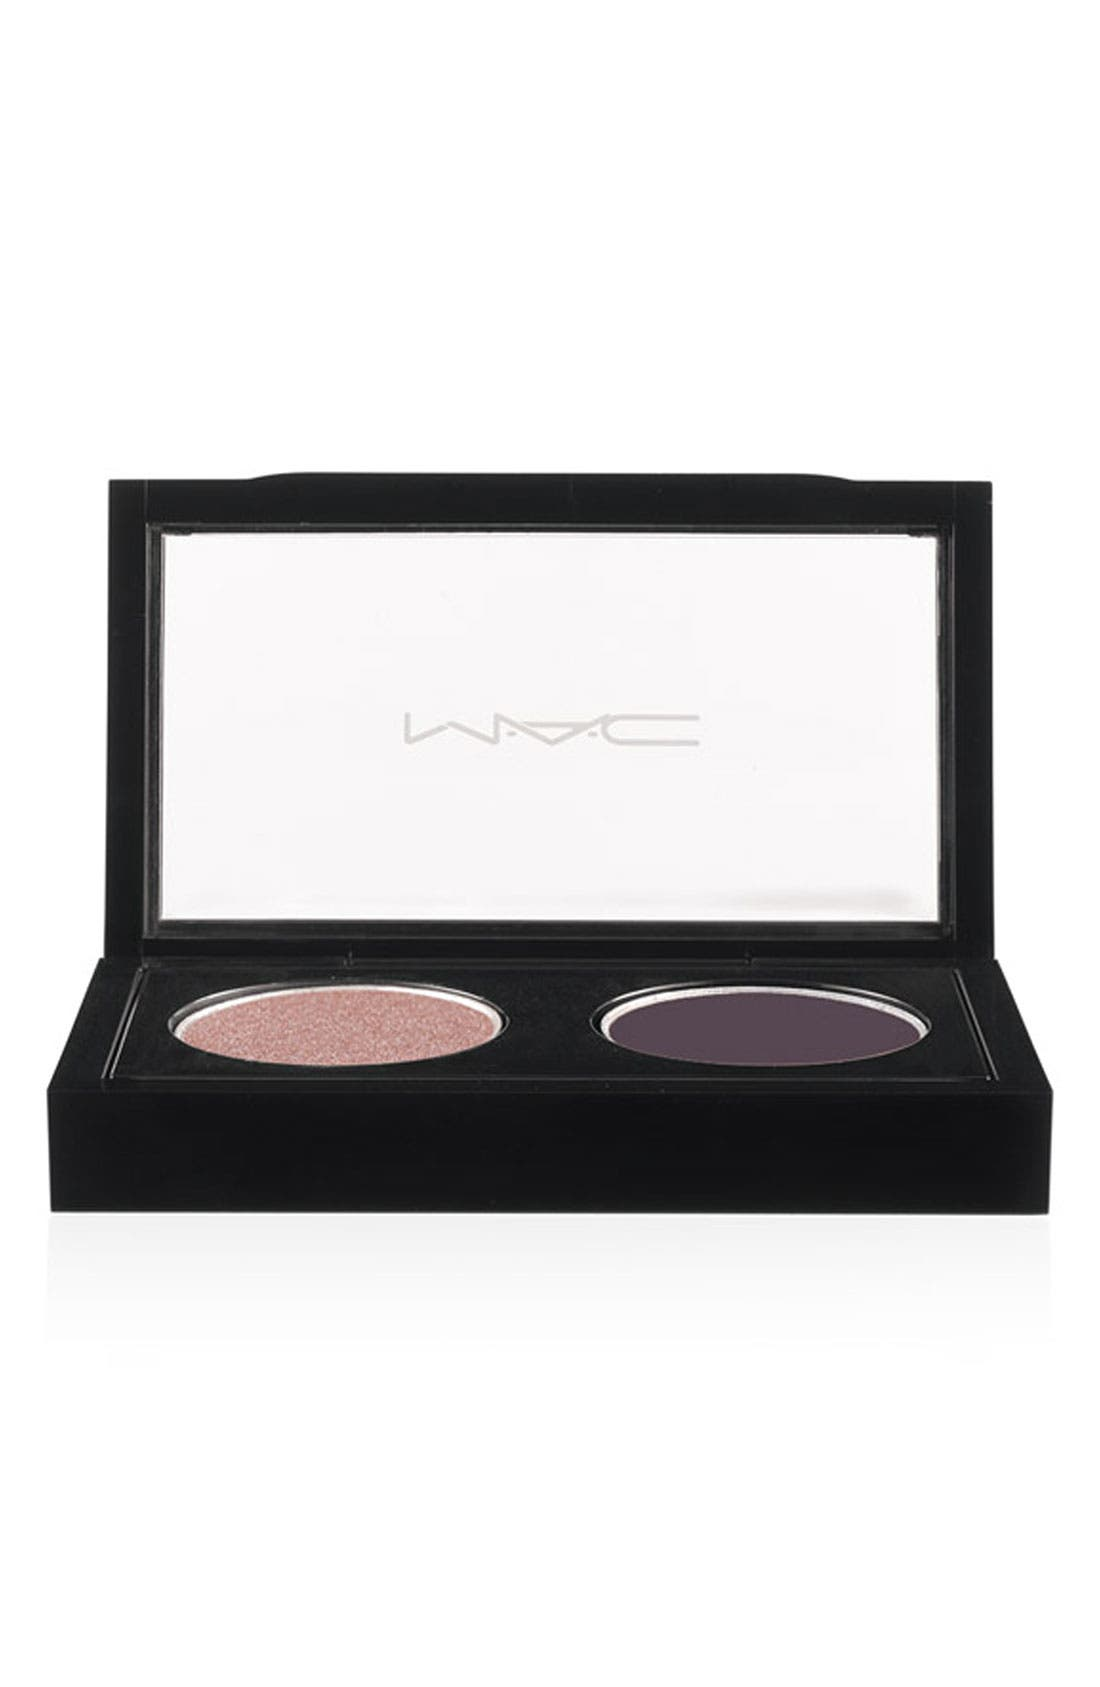 M·A·C Pro Palette Eyeshadow Duo,                         Main,                         color, 040